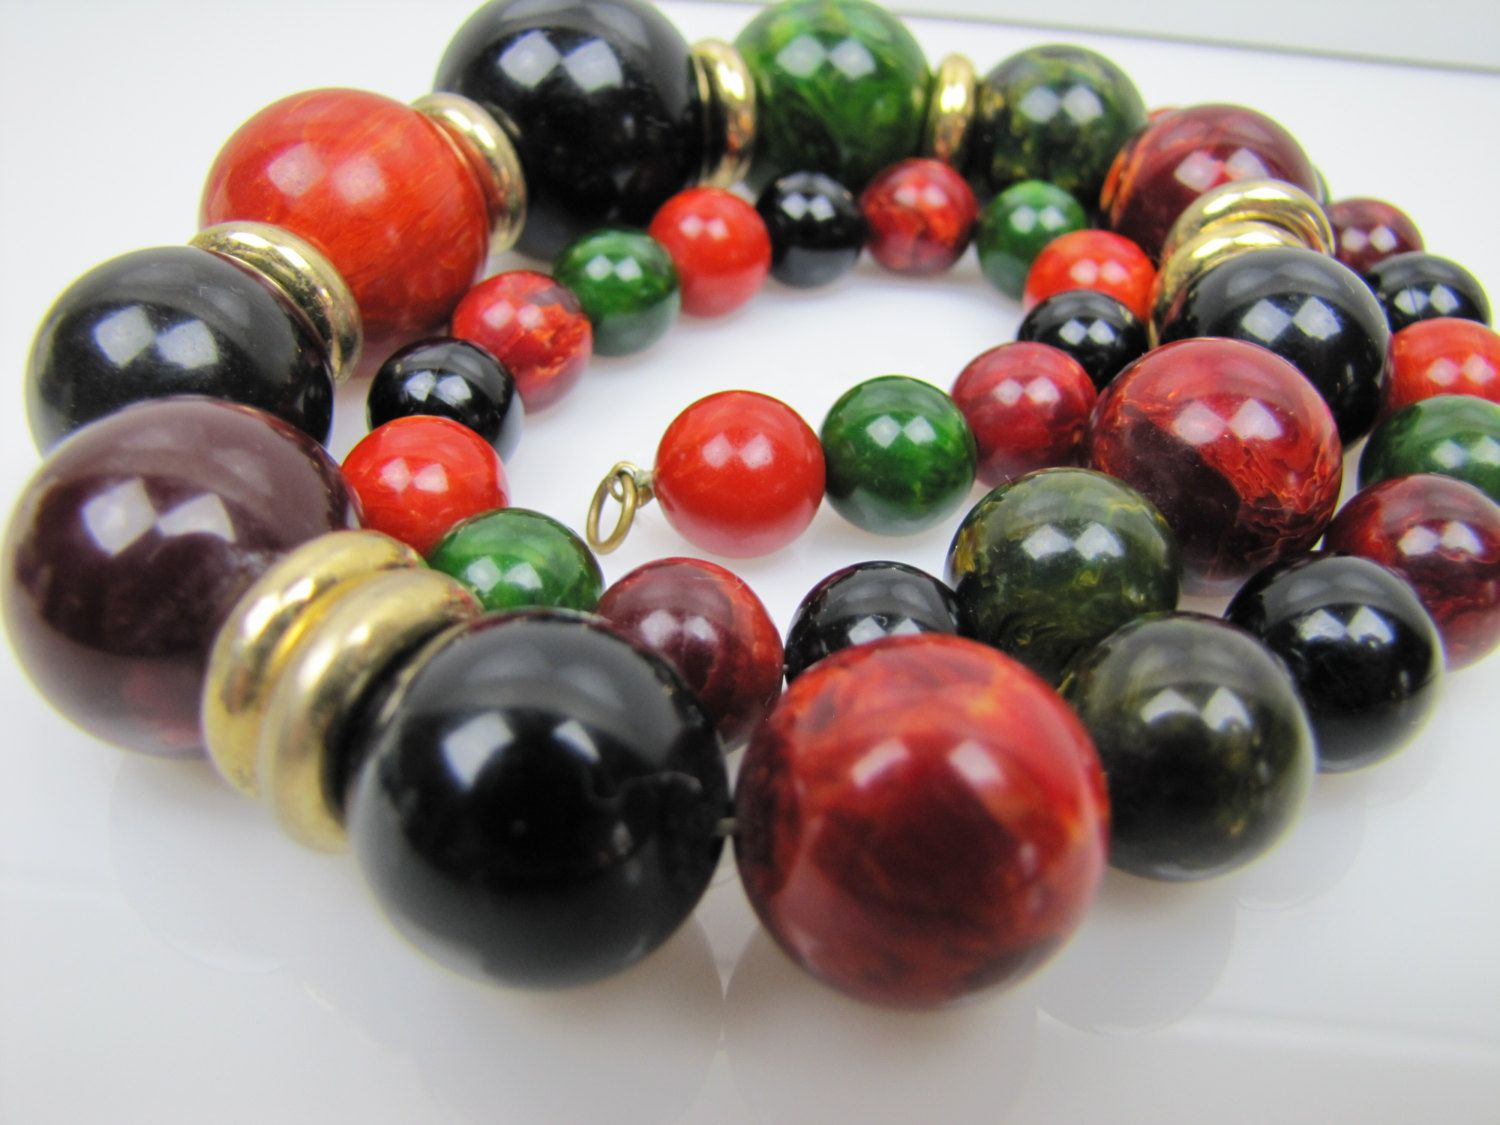 Vintage Bakelite & Brass Long Beaded Necklace. Mottled Marbled Multi Color Graduated Beads. Chunky Bakelite Necklace. 35 grams by MercyMadge on Etsy